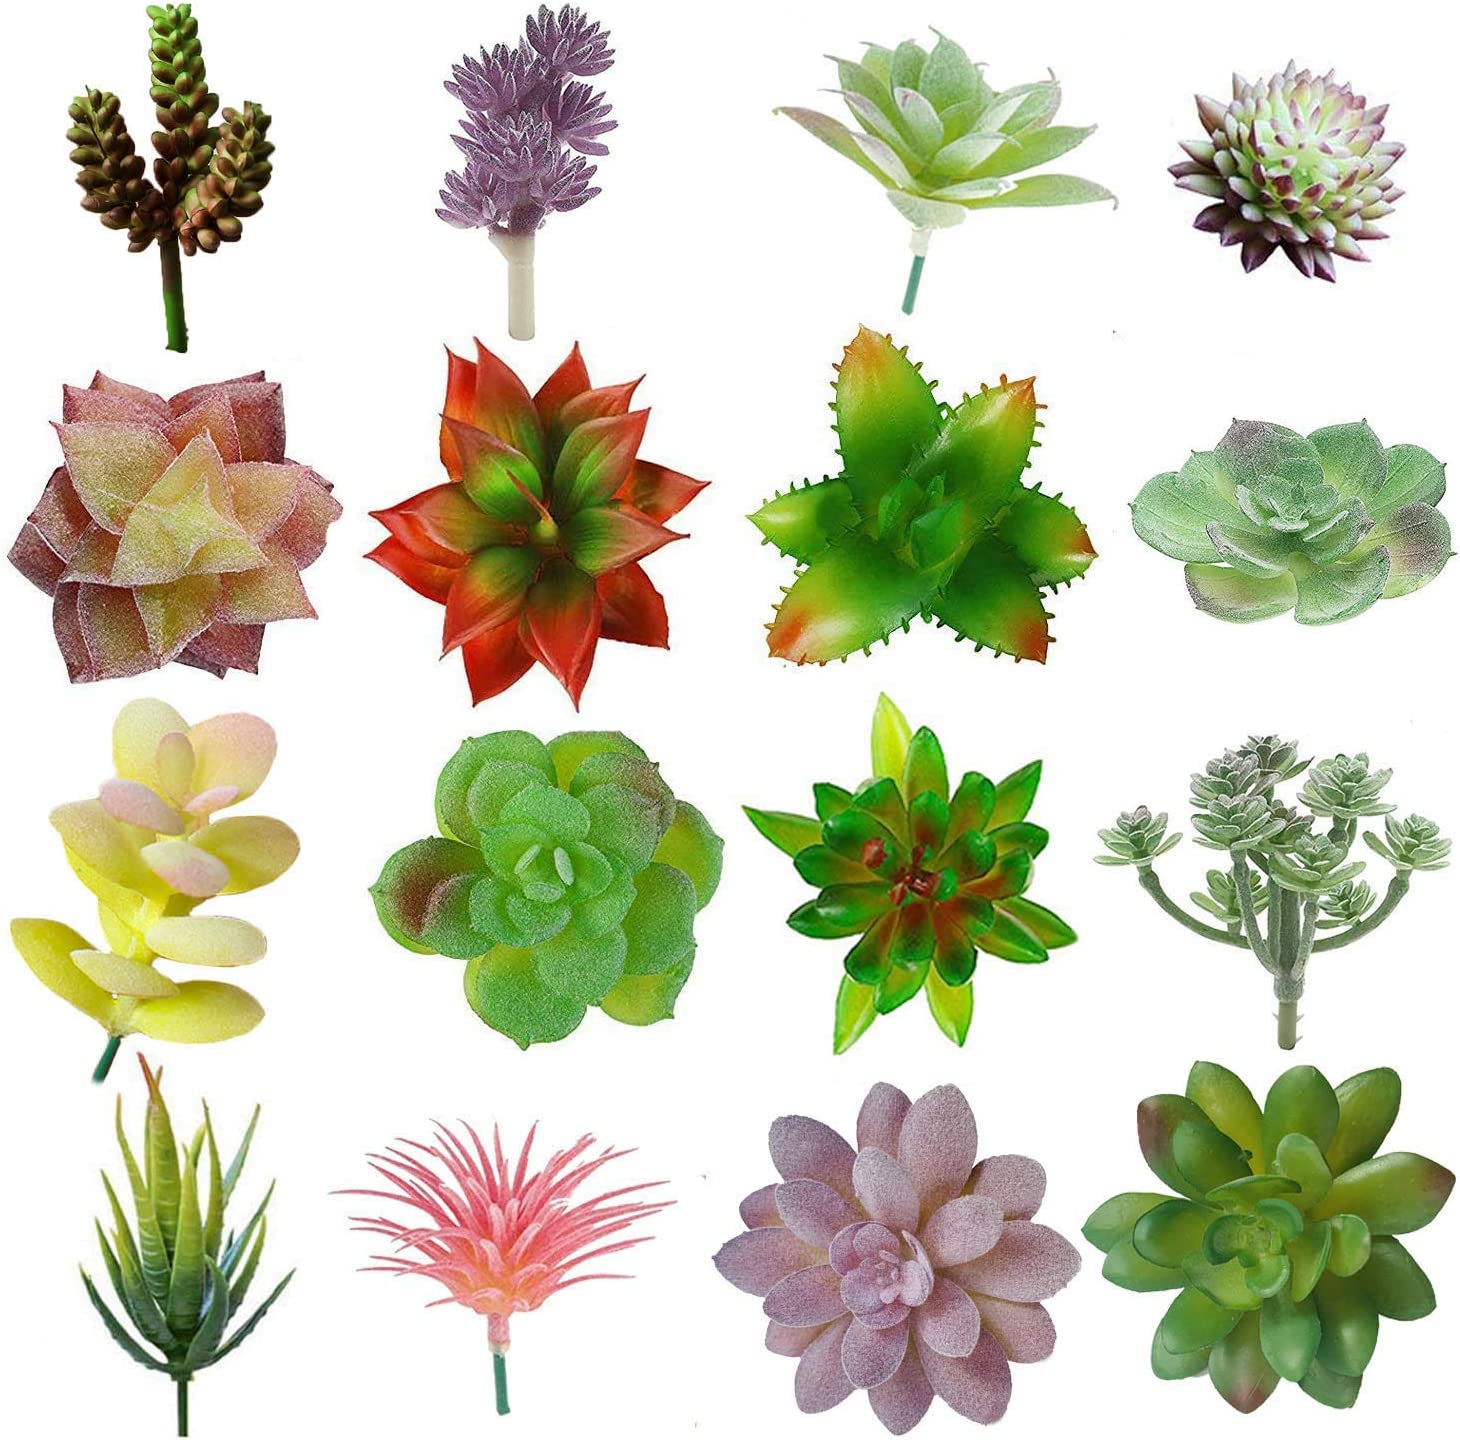 Lasimonne 16 Pcs Mini Artificial Succulent Flocking Plants Unpotted Faux Succulent Picks Fake Plants for Decoration